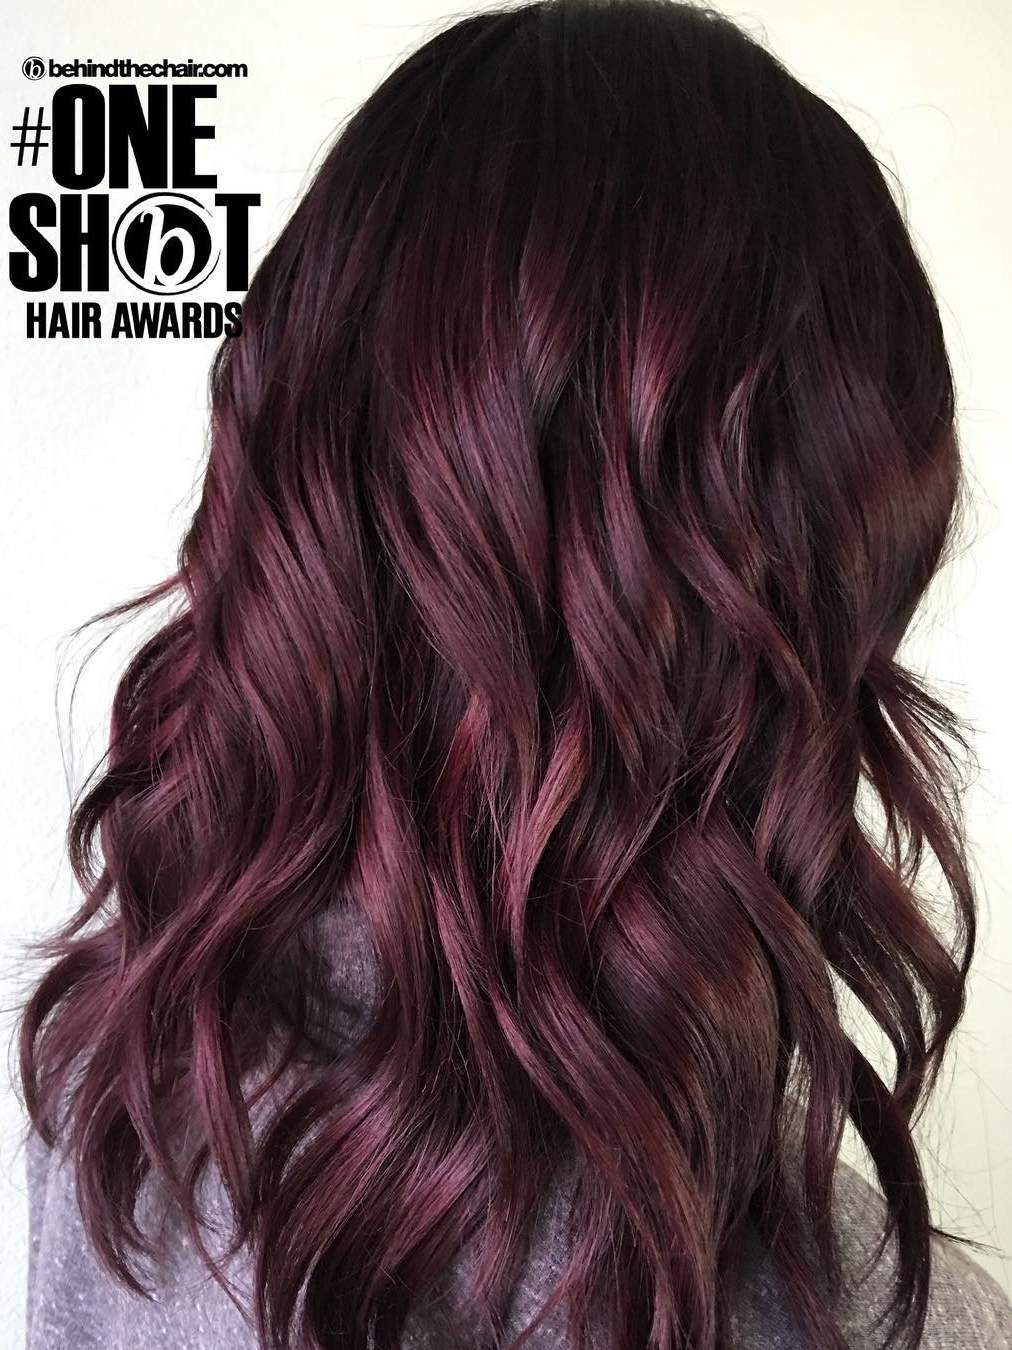 Brown violet hair color recommendations dress for spring in 2019